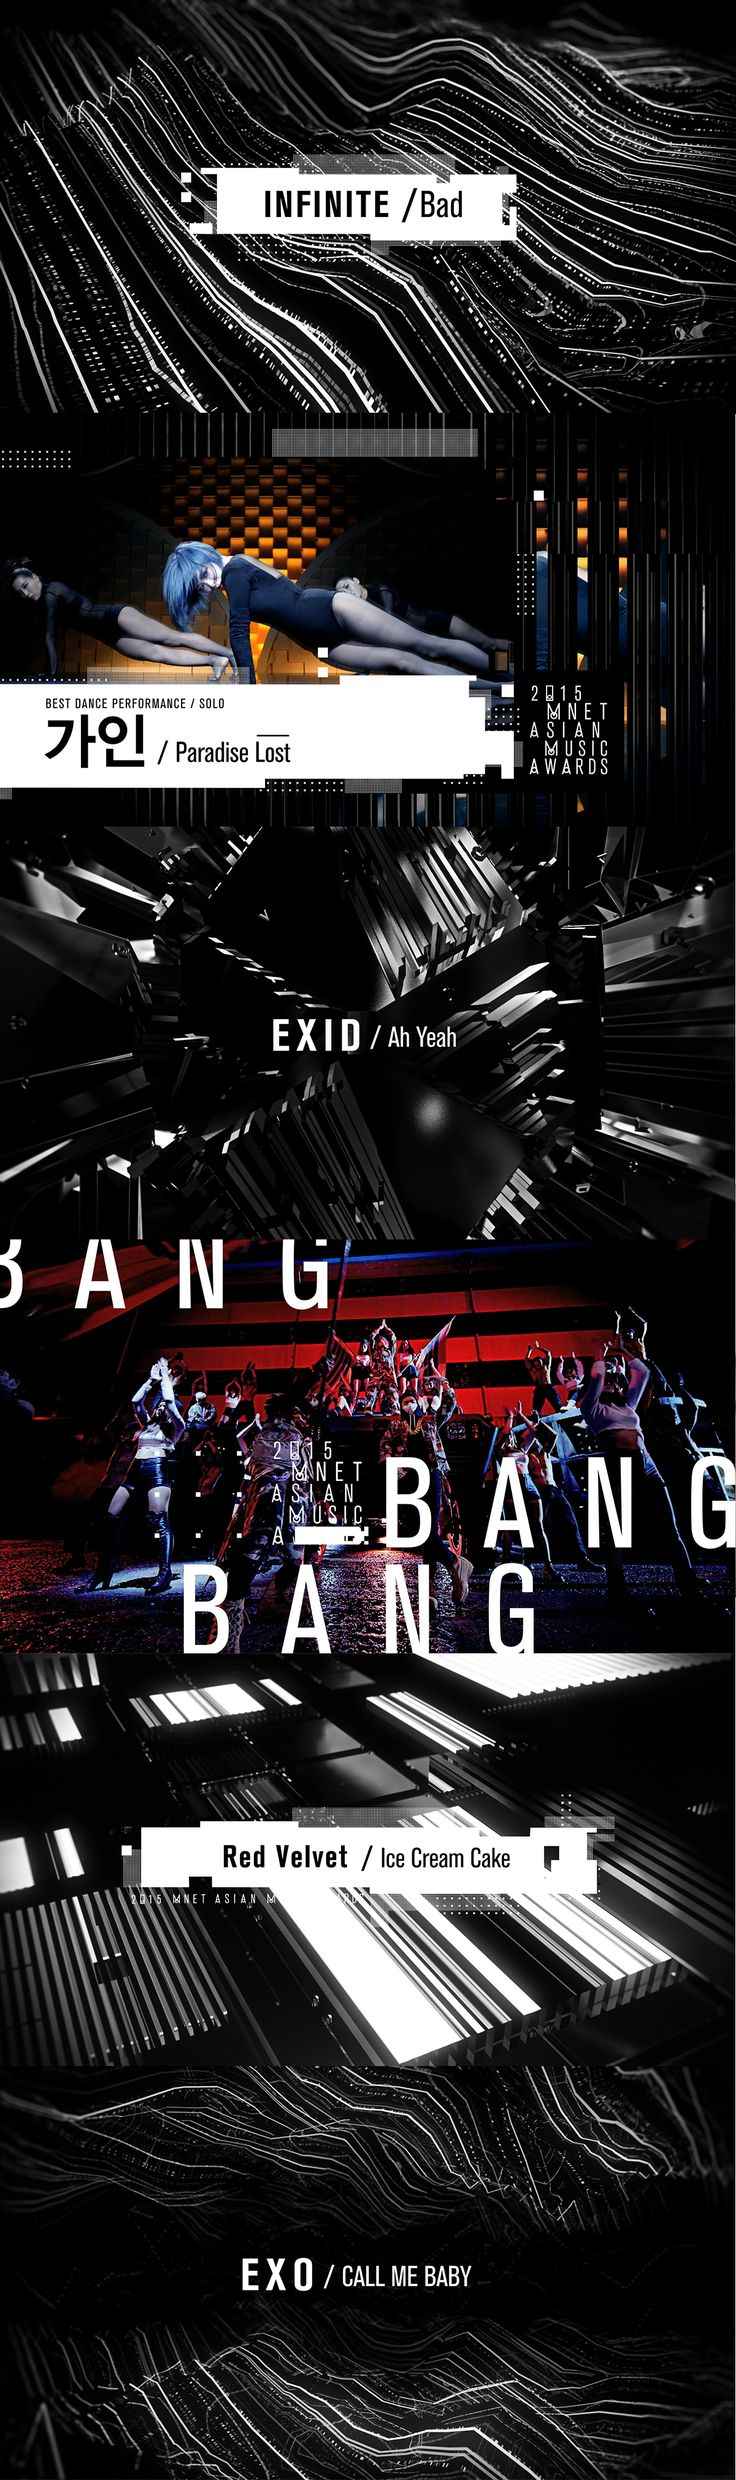 2015 Mnet Asian Music Awards Nominees